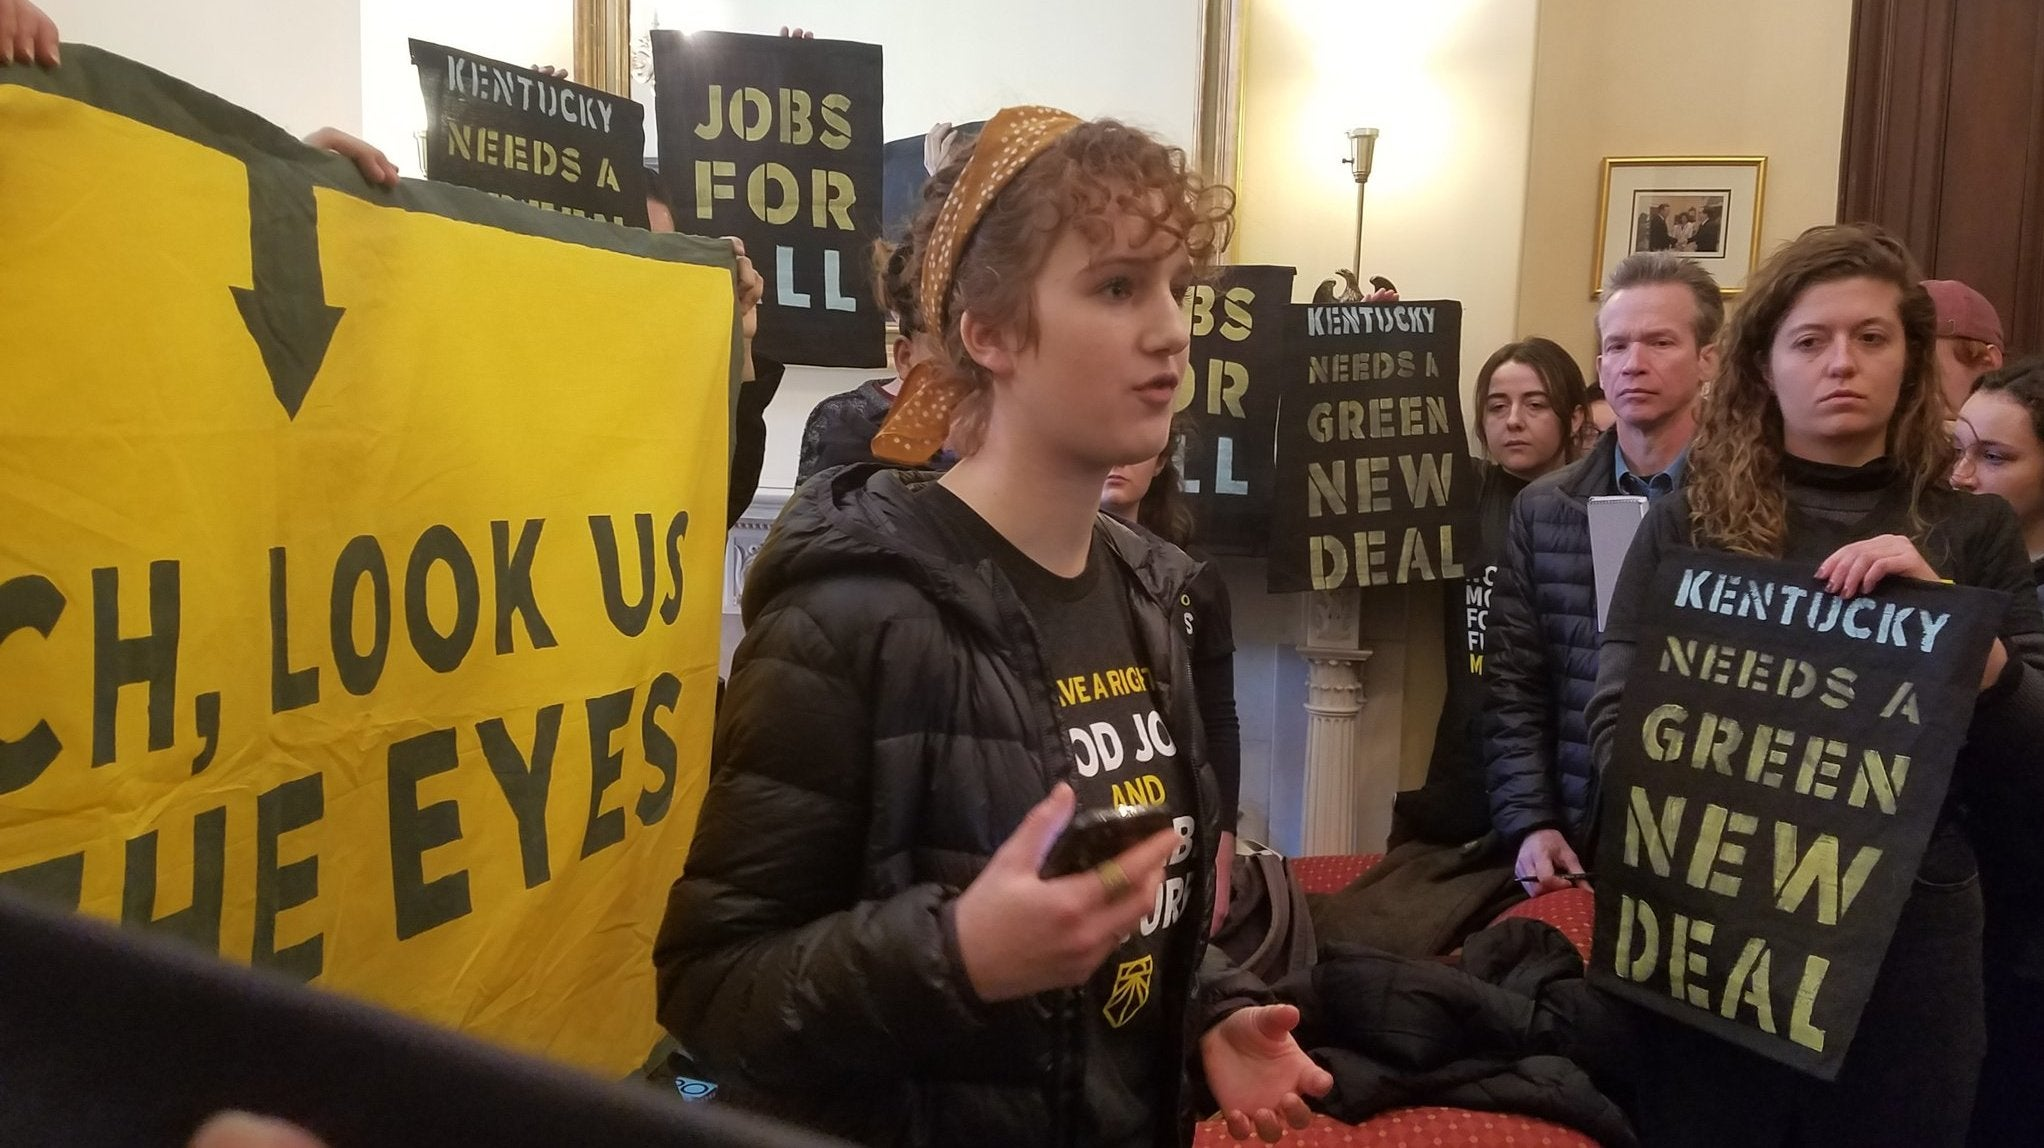 Dozens Of Youth Activists Arrested After Green New Deal Protest In Mitch McConnell's Office